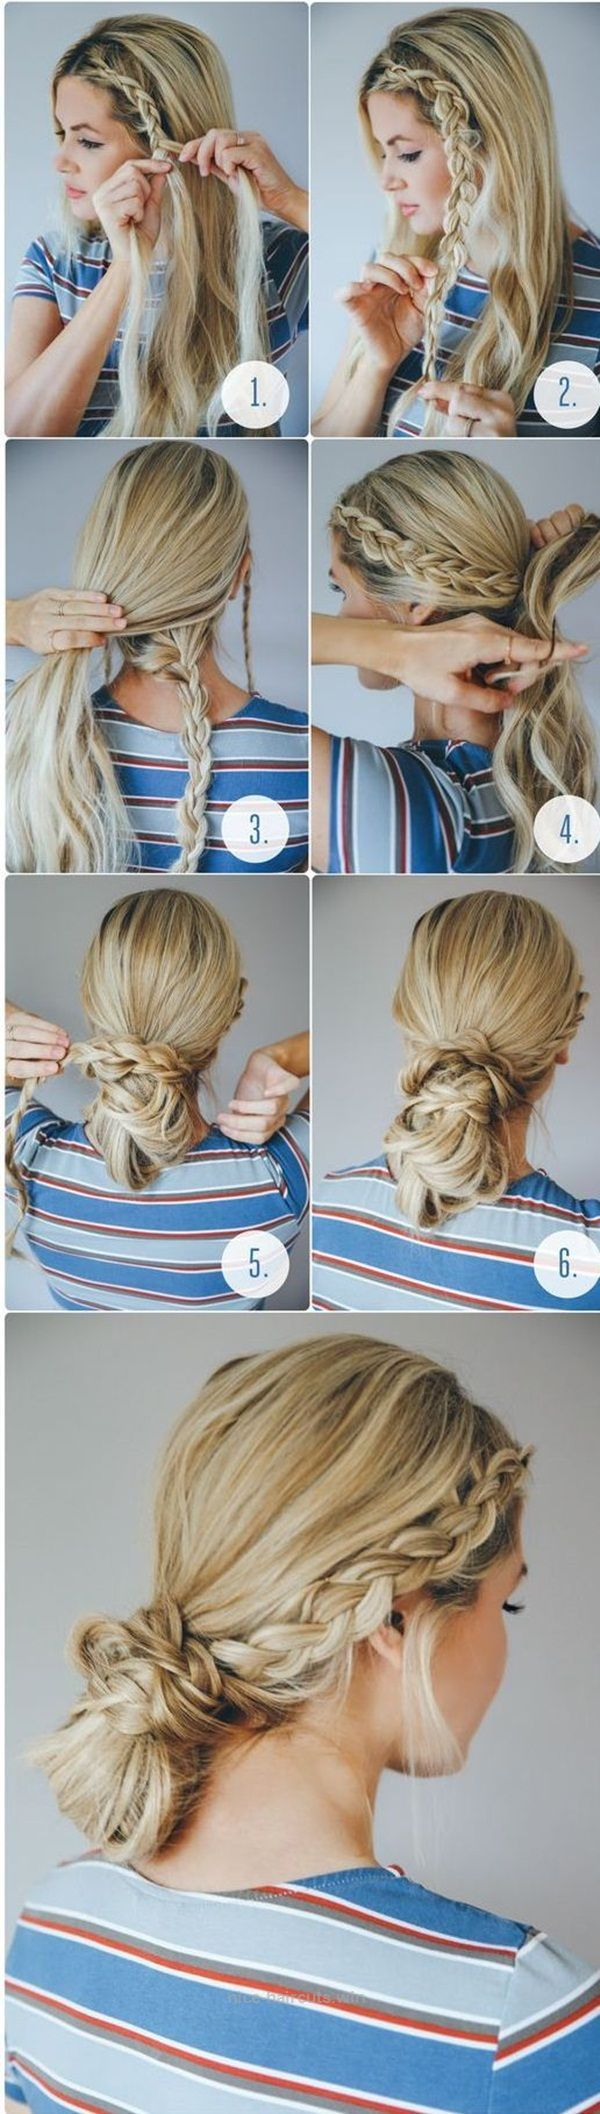 The 25+ best Easy morning hairstyles ideas on Pinterest | 5 minute ...